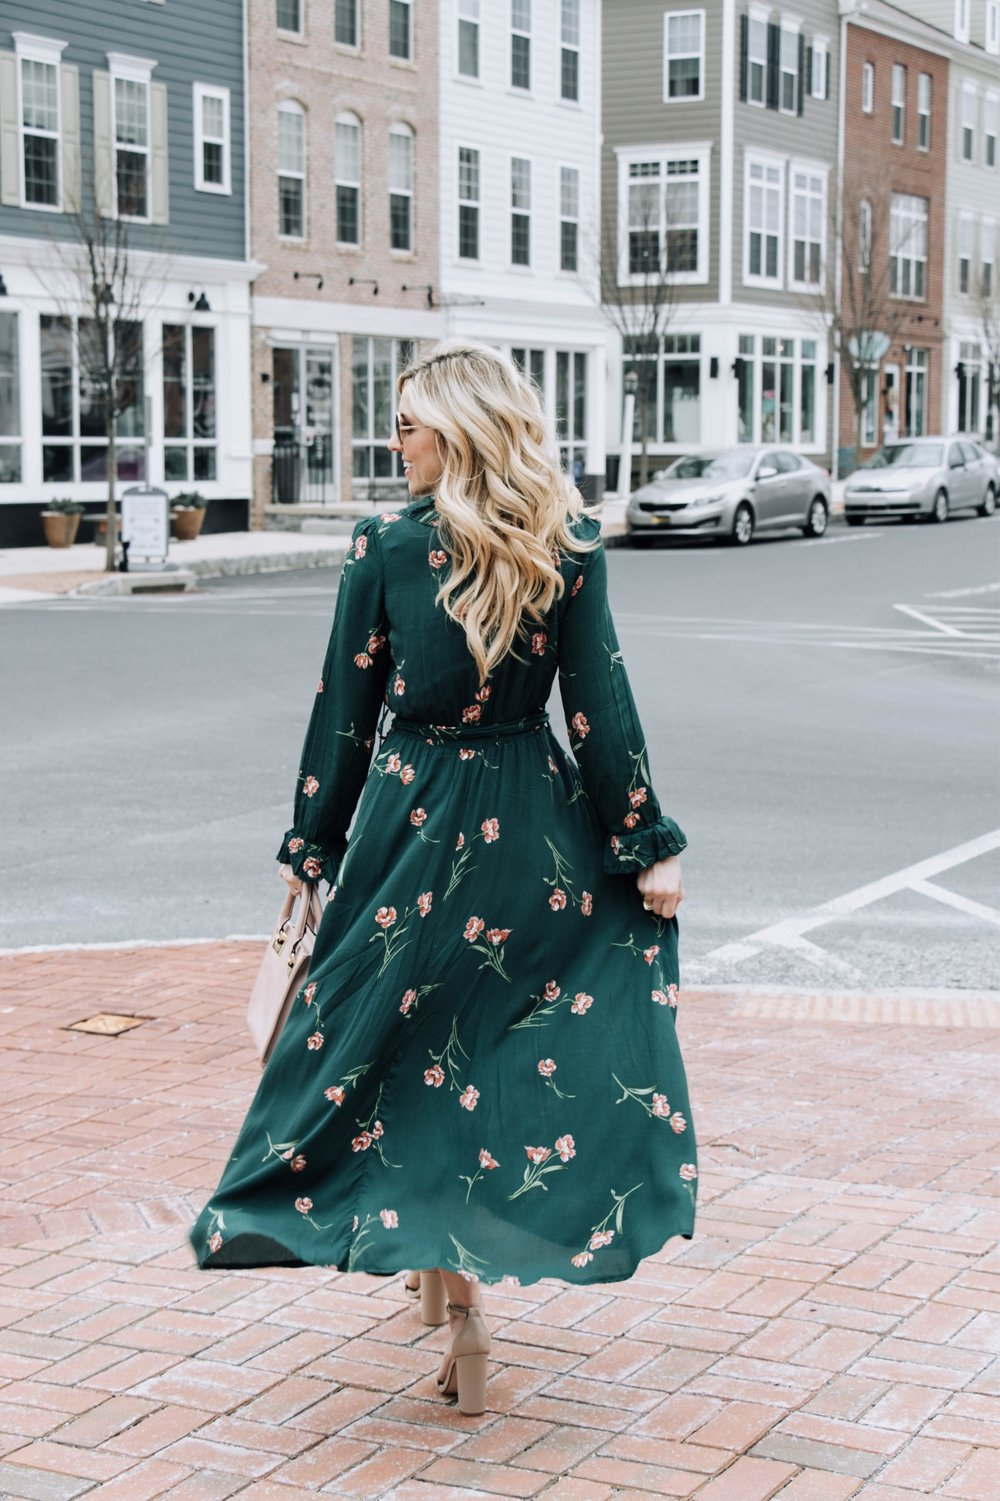 FLORAL PRINT DRESS - Floral prints will never go out of style. This trend has been all over the runway. There are many options to wear:Fit and Flare, Maxi, and a more Fitted Midi.